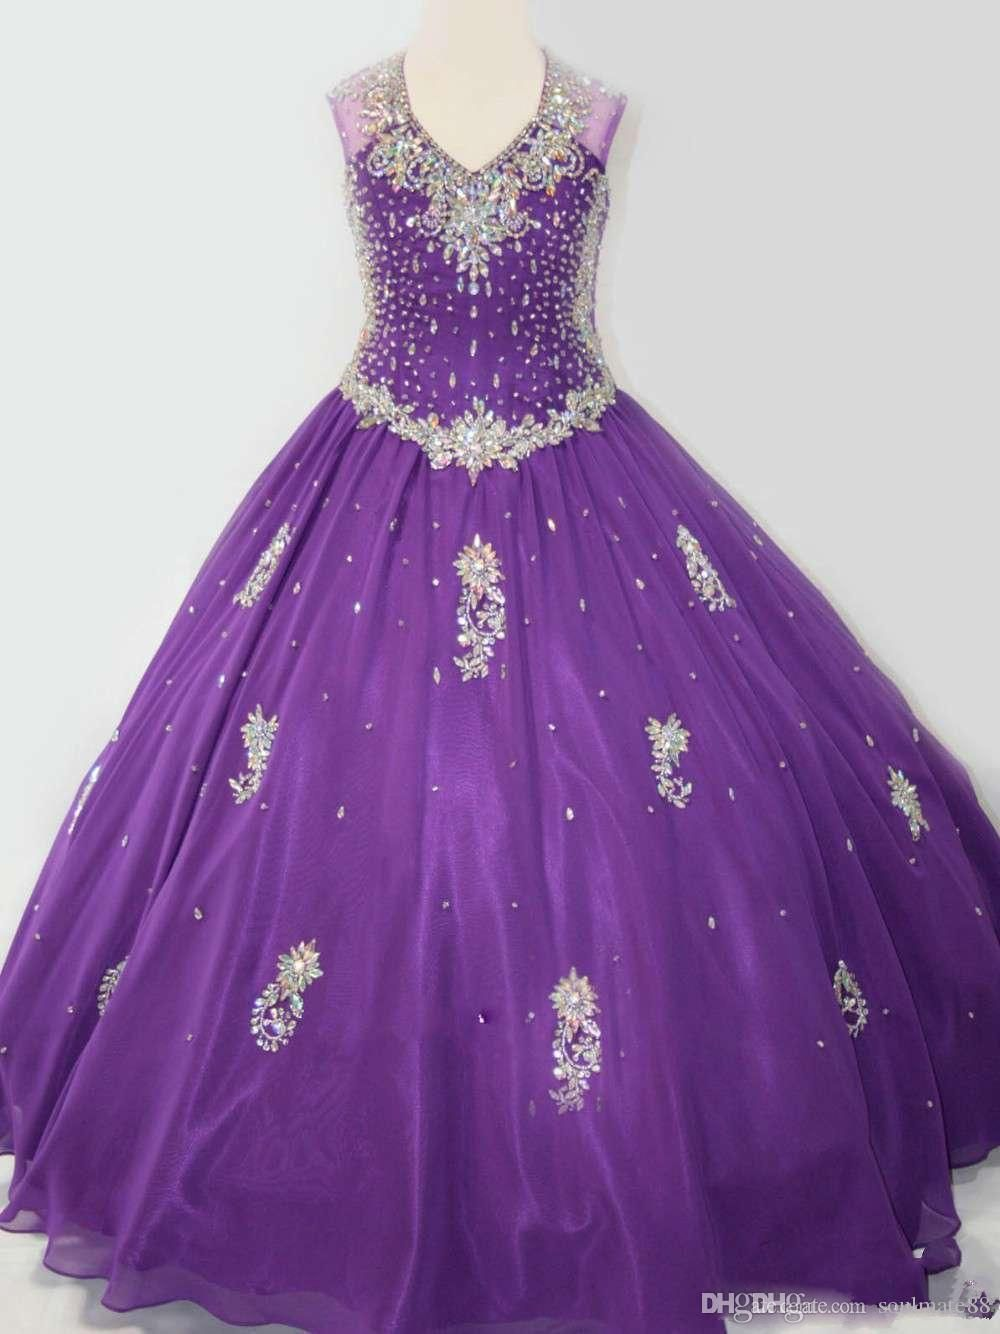 2016 Luxury Purple Girl s Pageant Dresses Sleeveless V Neck Ball Gown For  Weddings Flower Girls Dresses Backless Crystal Kids Formal Wear 09309a6a08f5